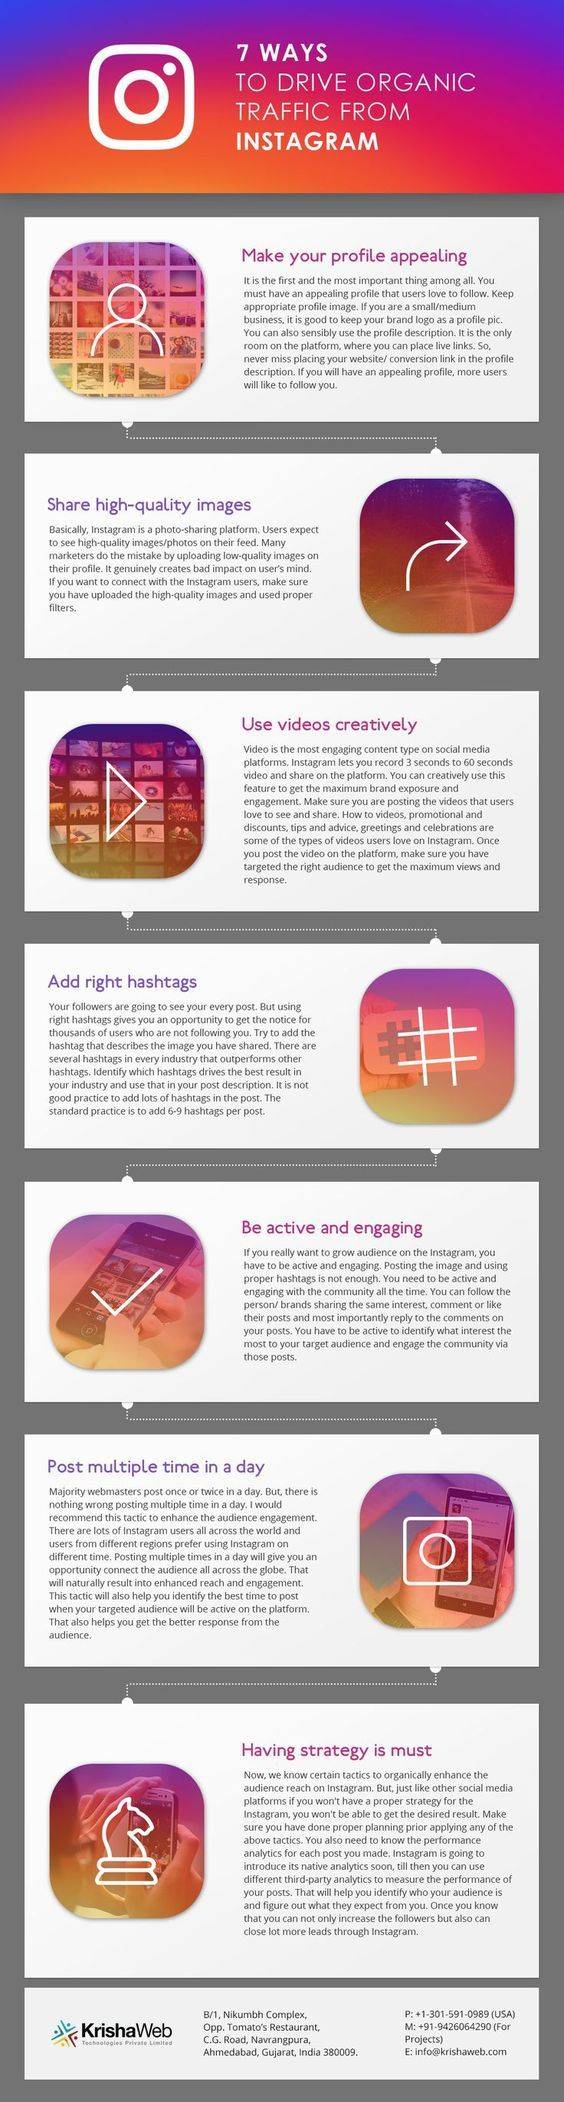 7 Ways to Drive Organic Website Traffic from #Instagram #Infographic #SocialMedia